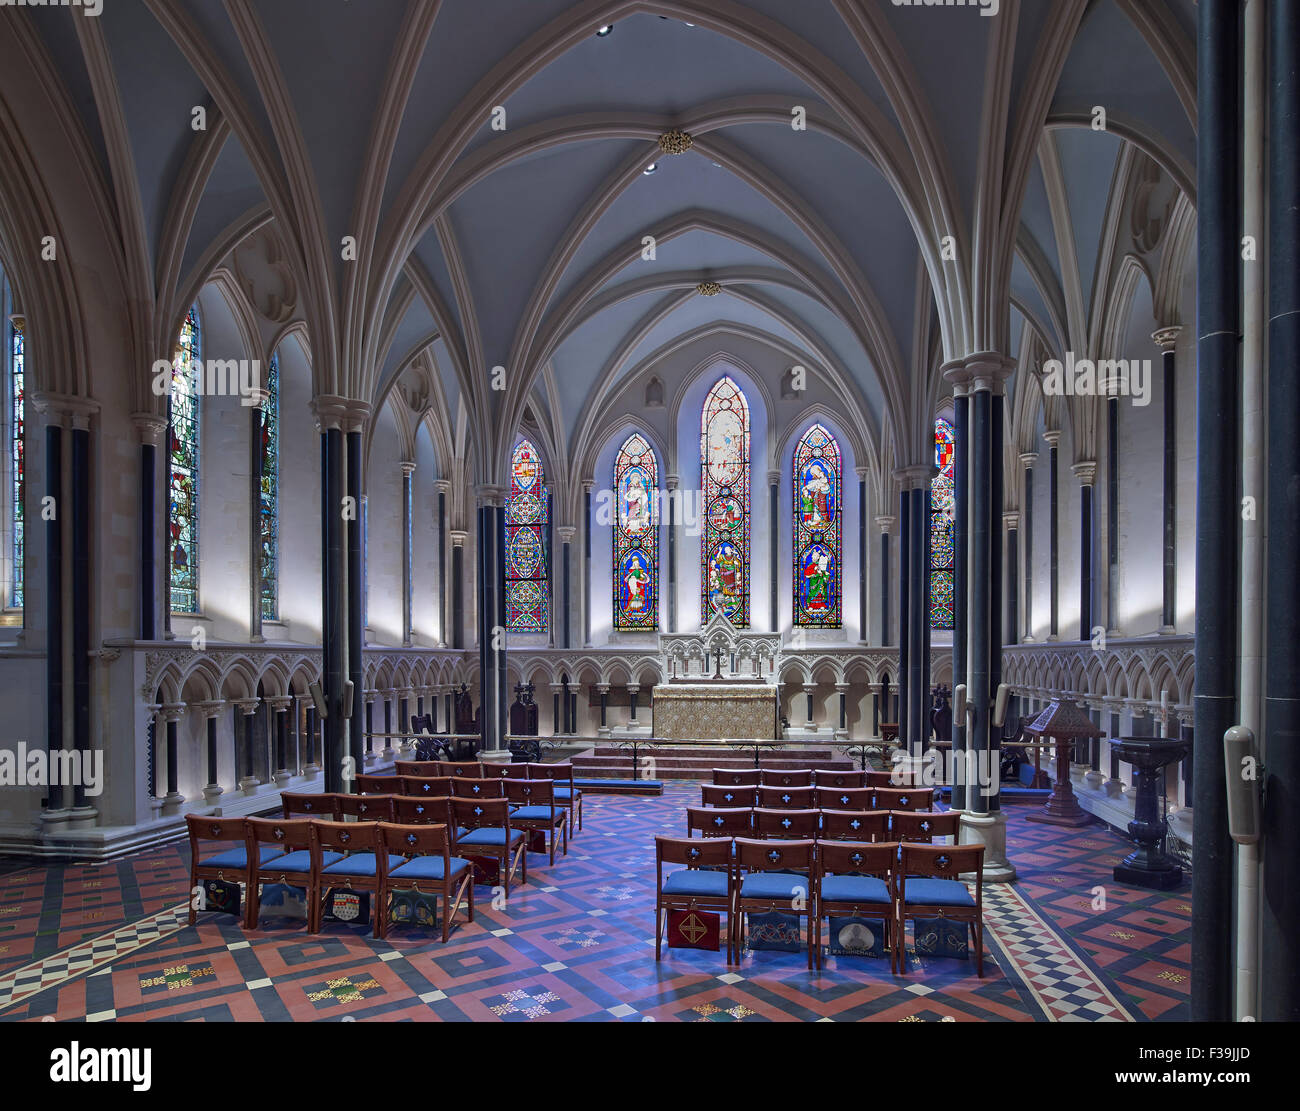 St Patrick's Cathedral Lady Chapel - Stock Image